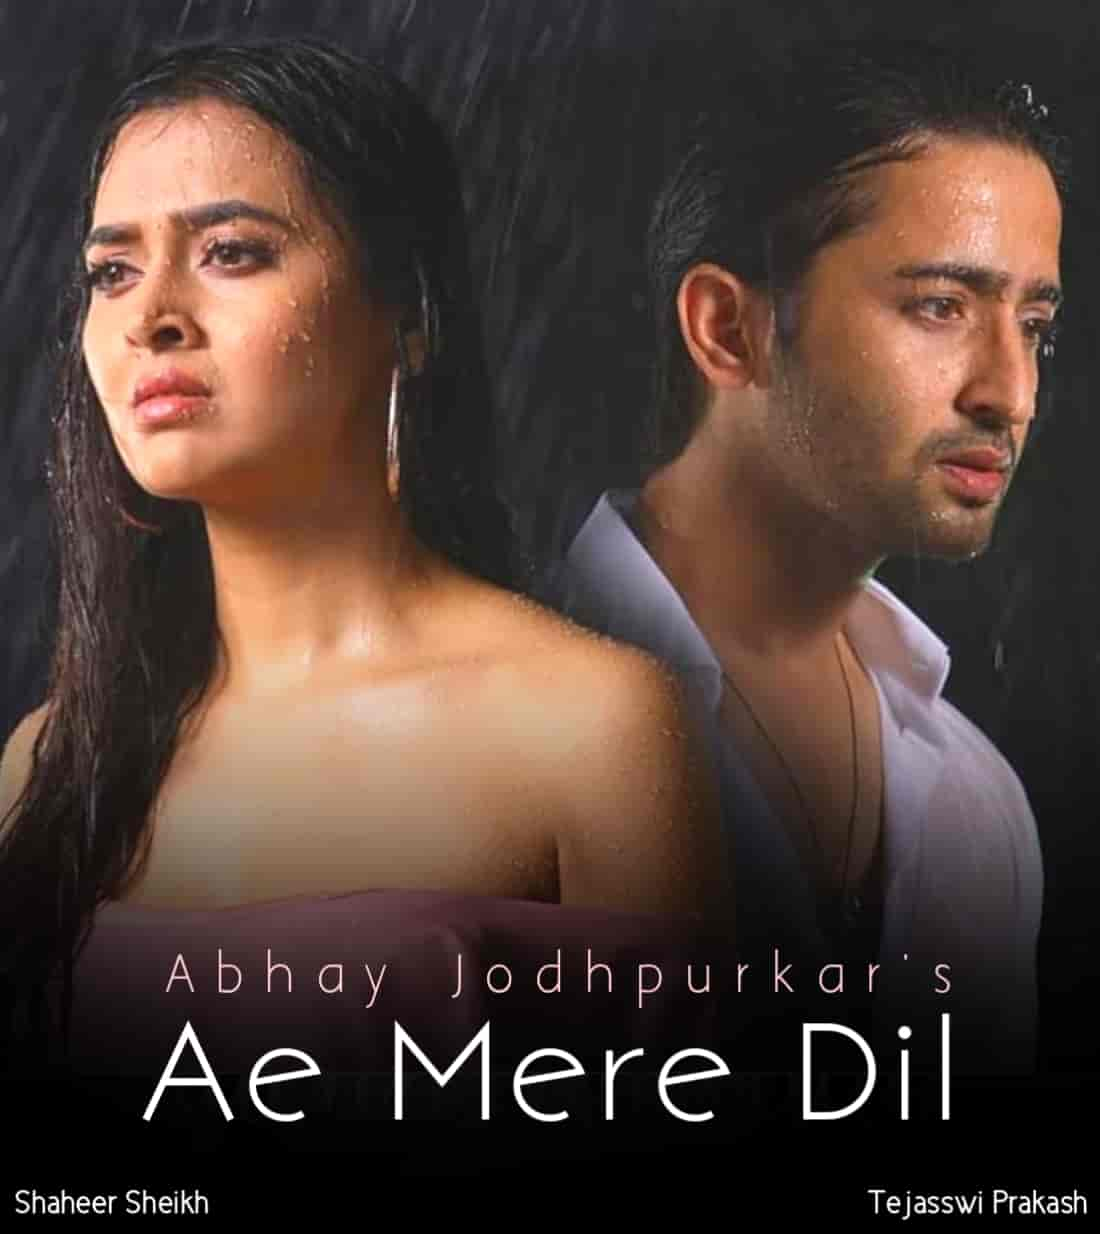 Ae Mere Dil Sad Hindi Song Image Features Shaheer Sheikh and Tejasswi Prakash